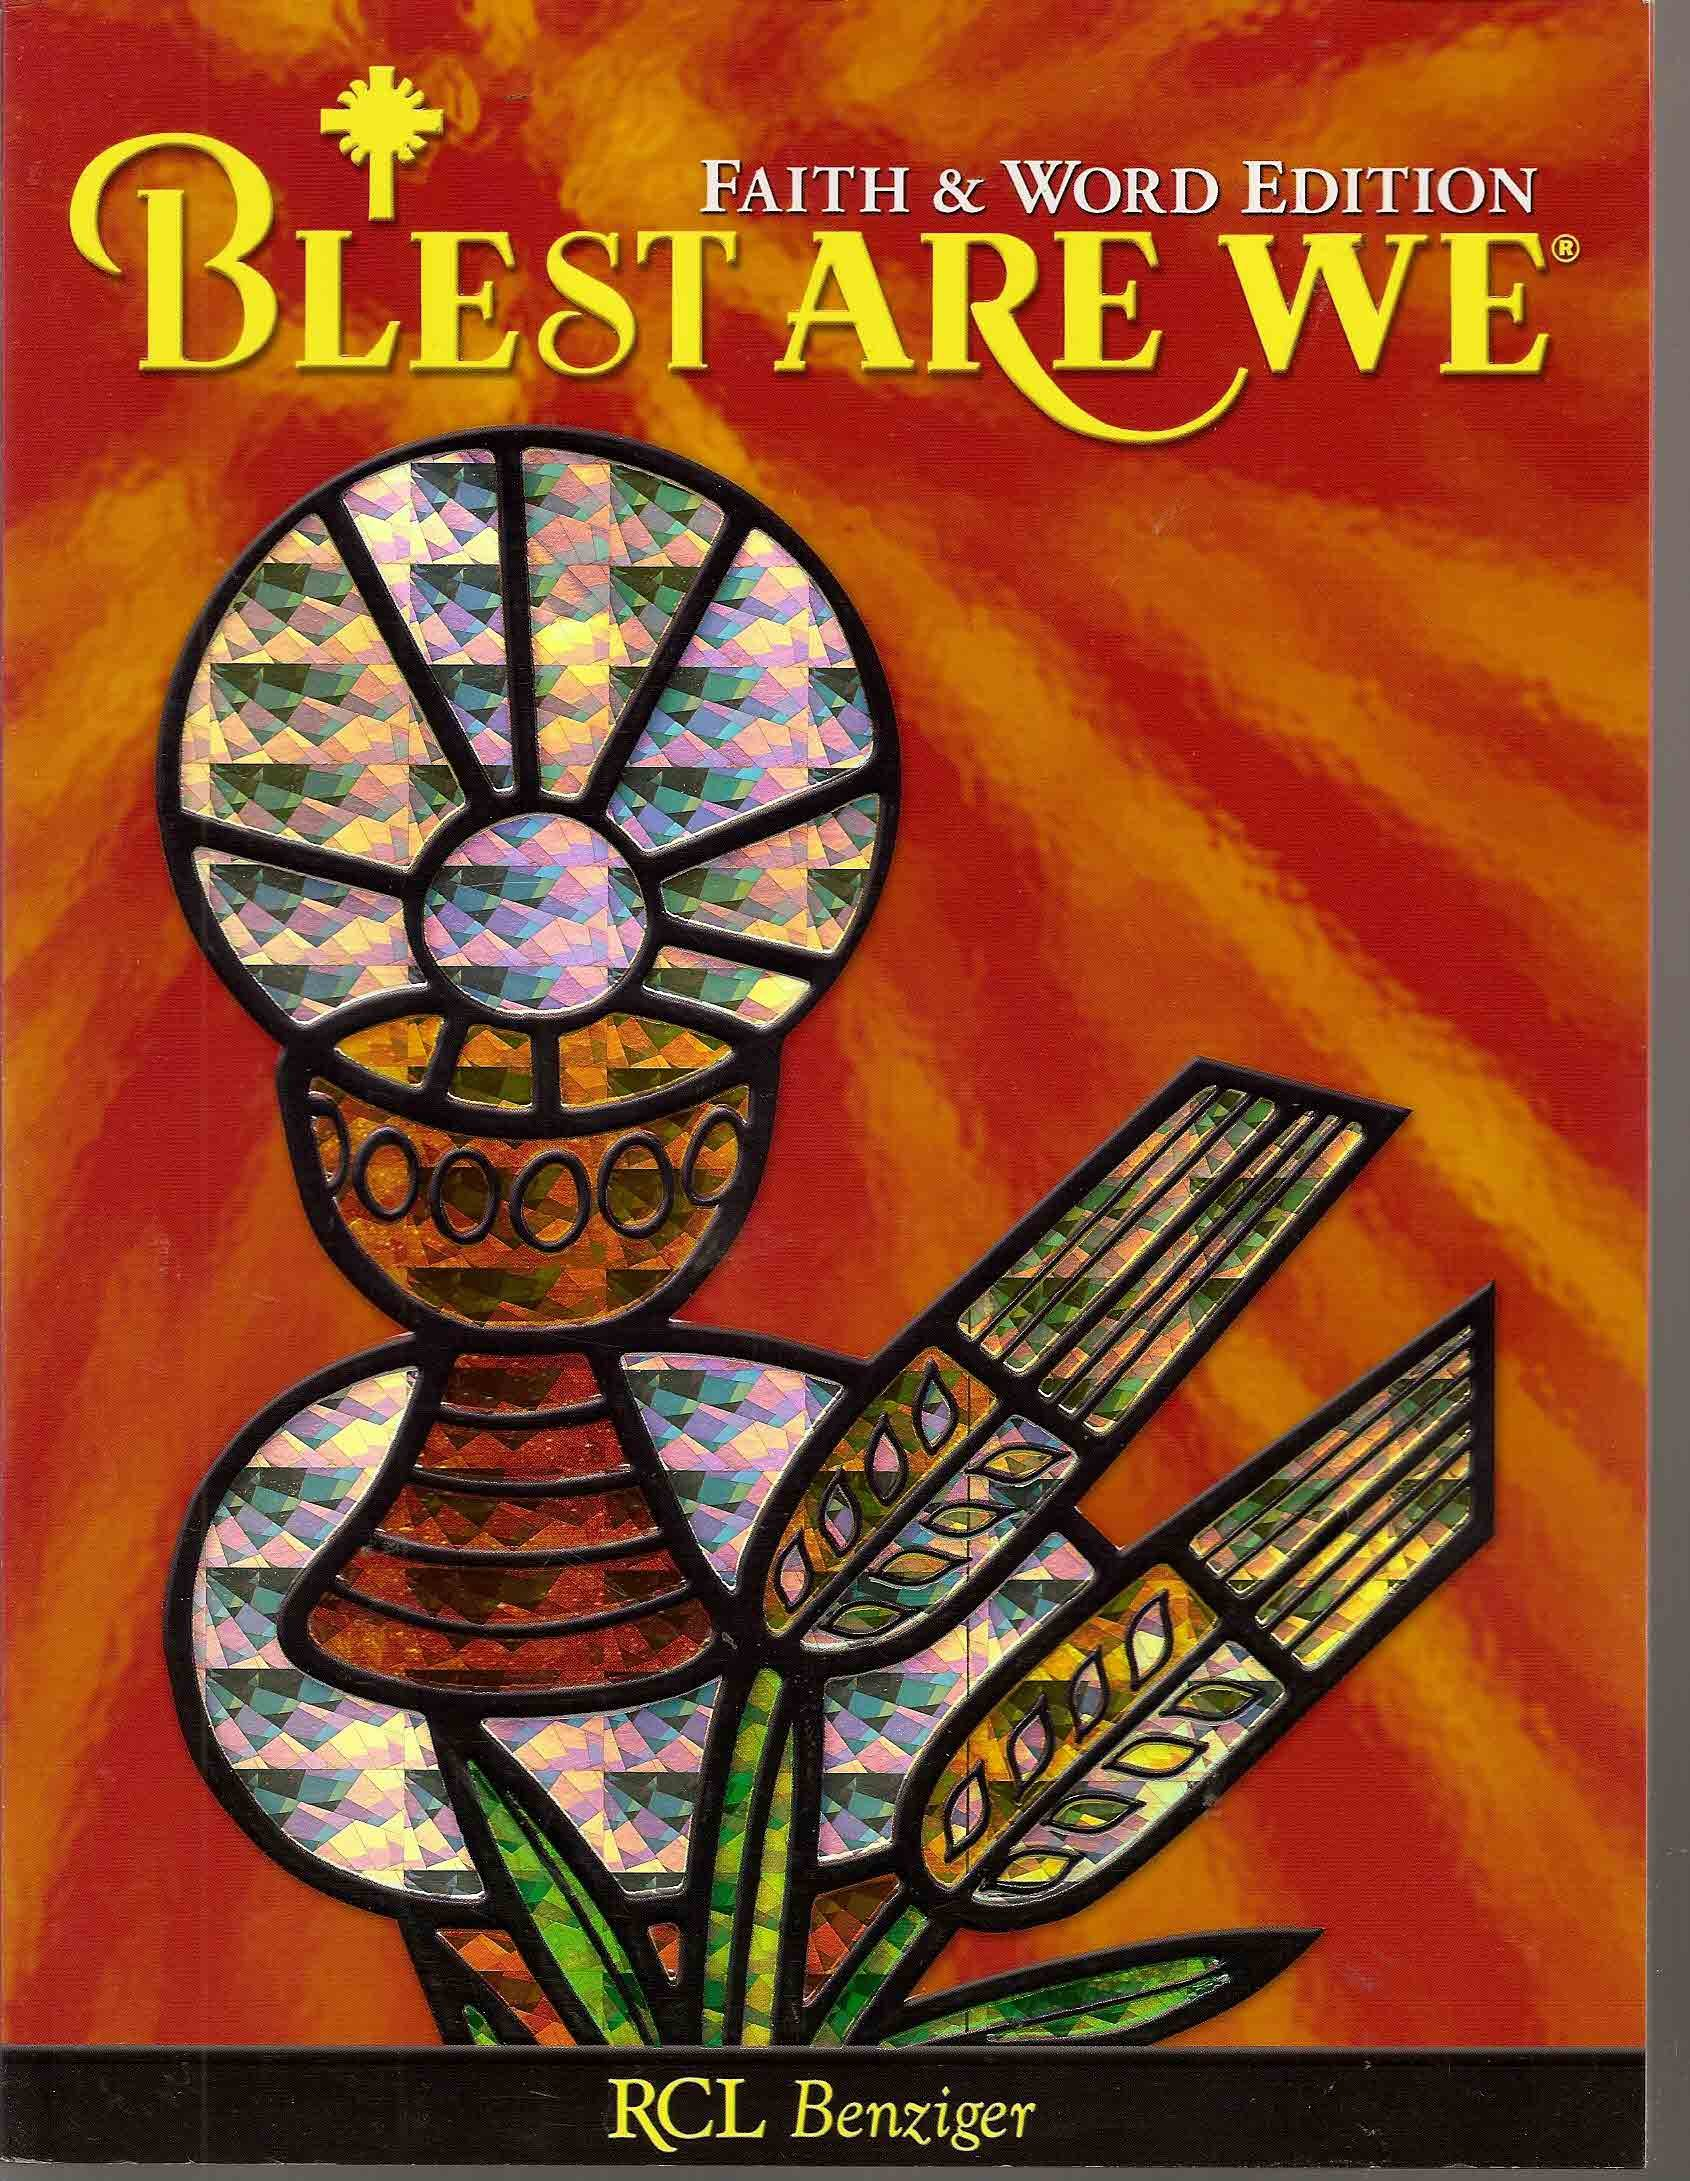 Blest Are We: Faith & Word Edition pdf